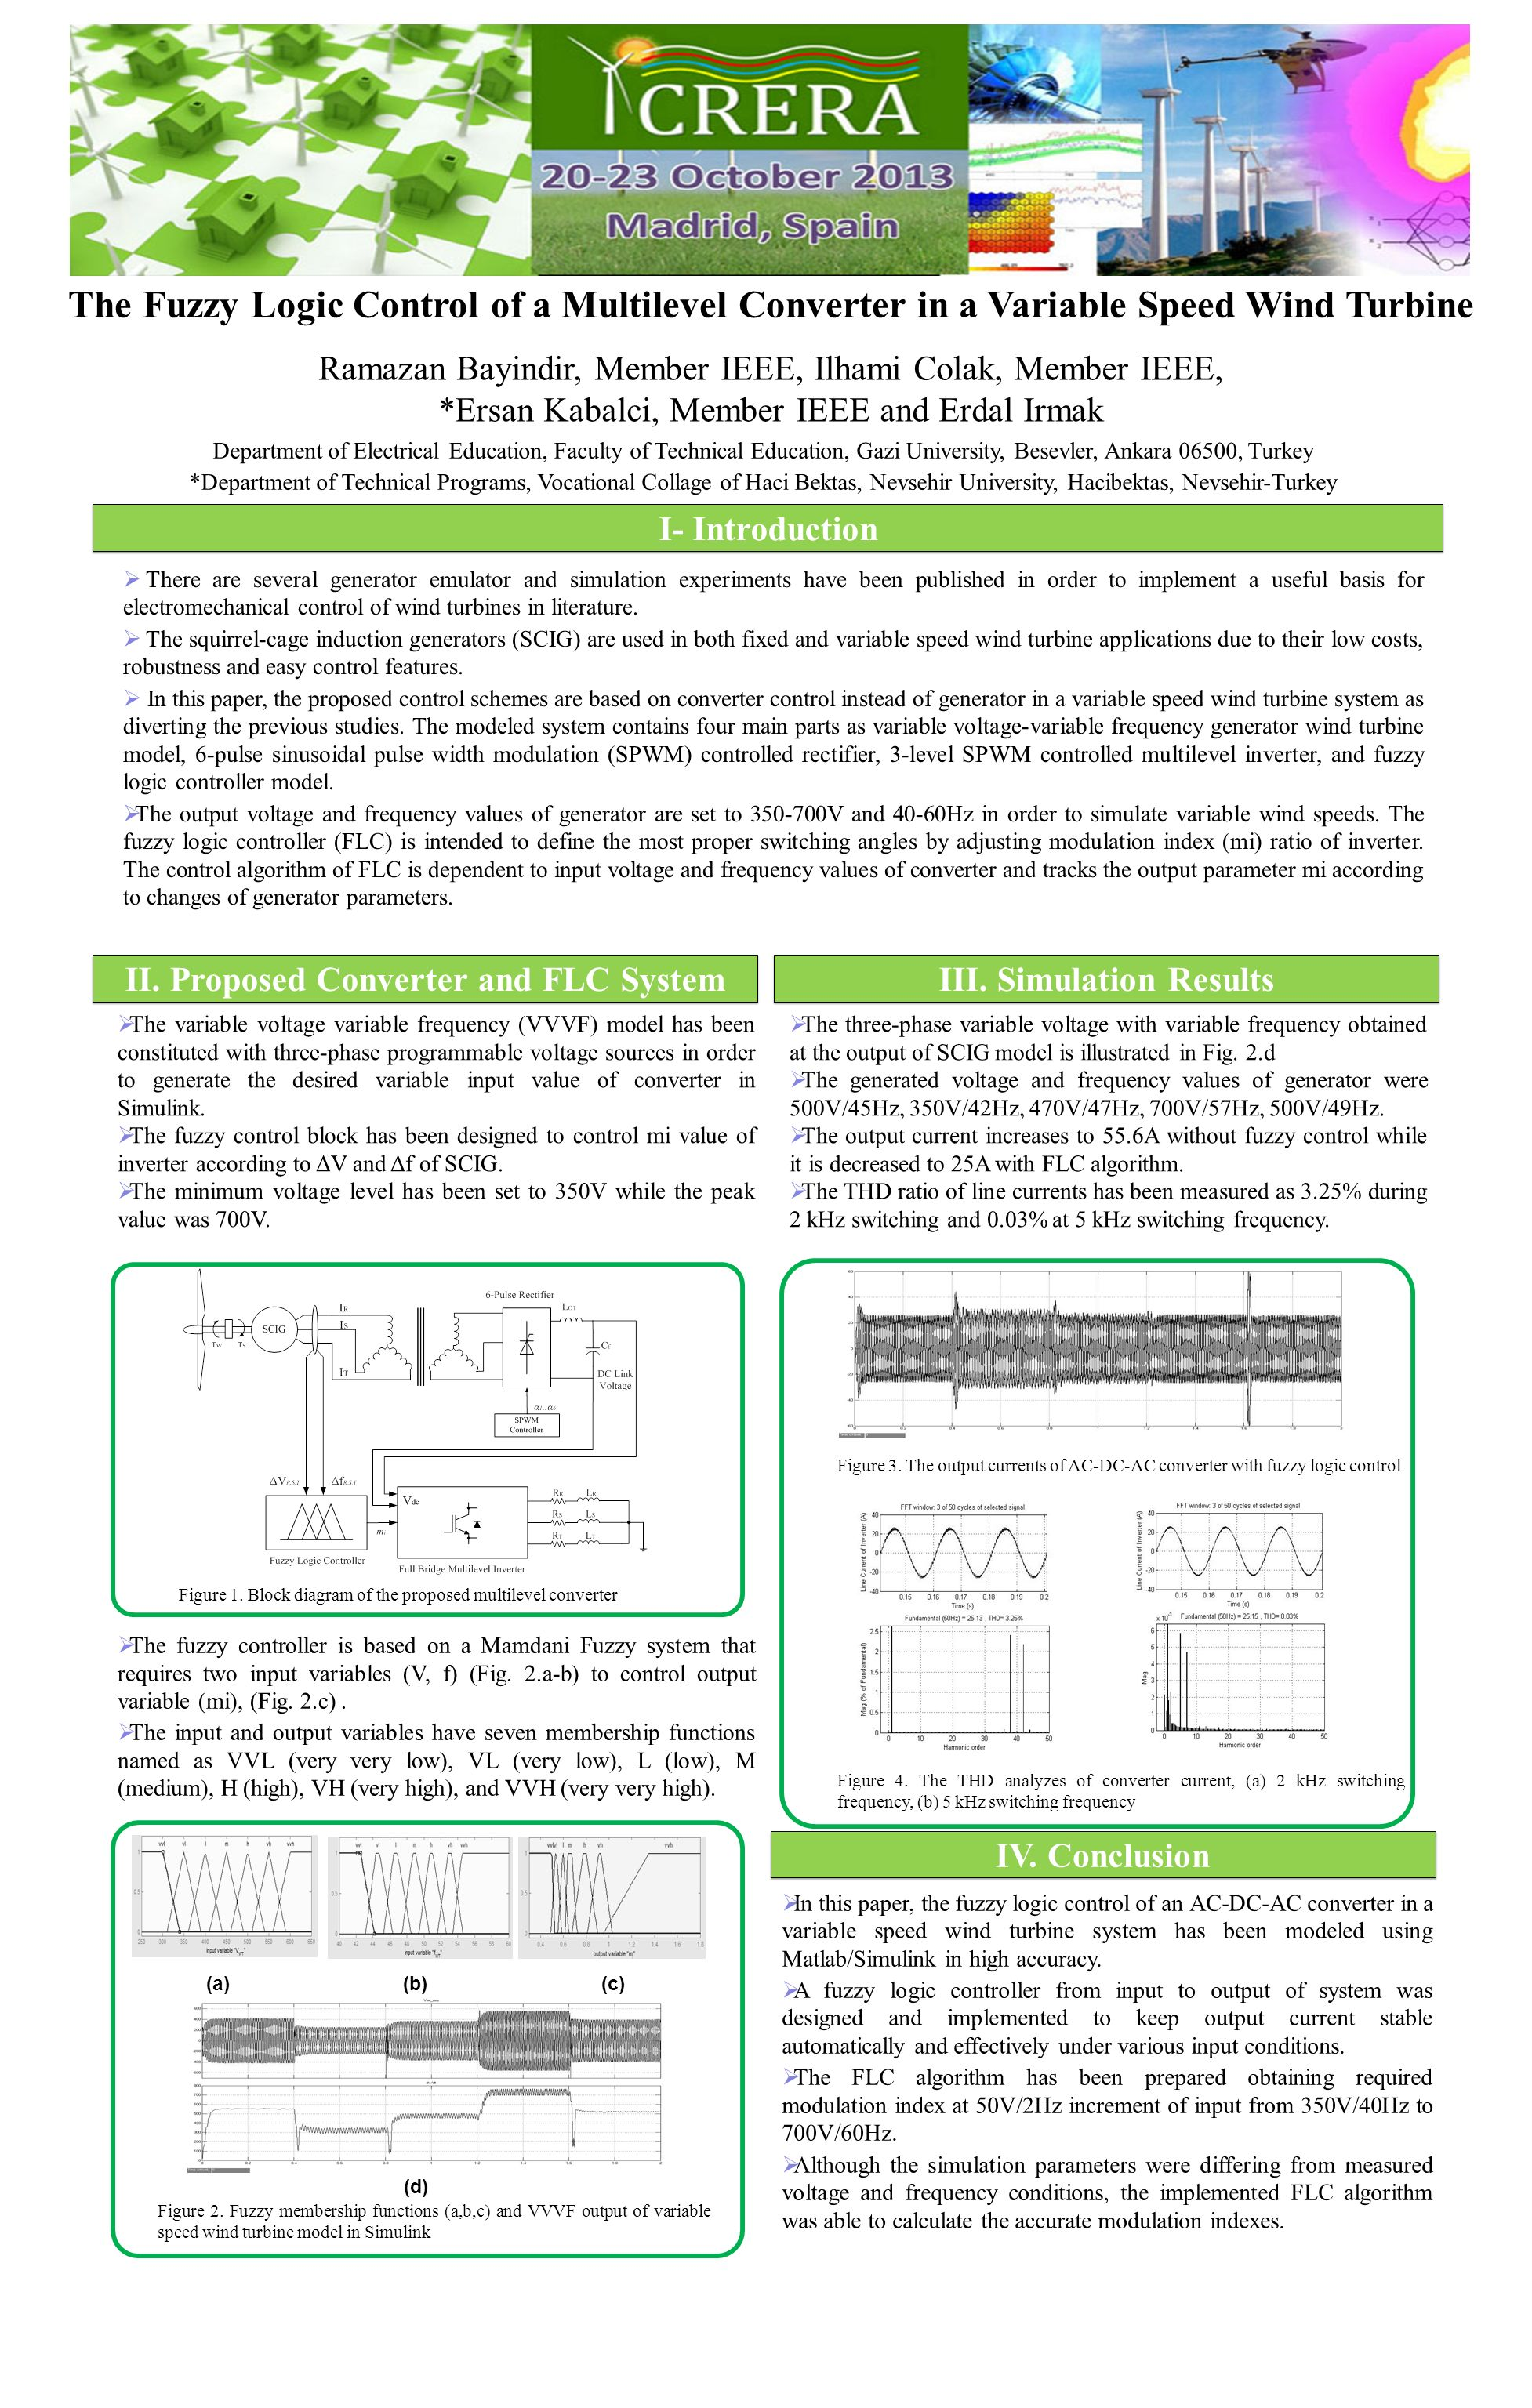 The Fuzzy Logic Control of a Multilevel Converter in a Variable Speed Wind Turbine Ramazan Bayindir, Member IEEE, Ilhami Colak, Member IEEE, *Ersan Ka